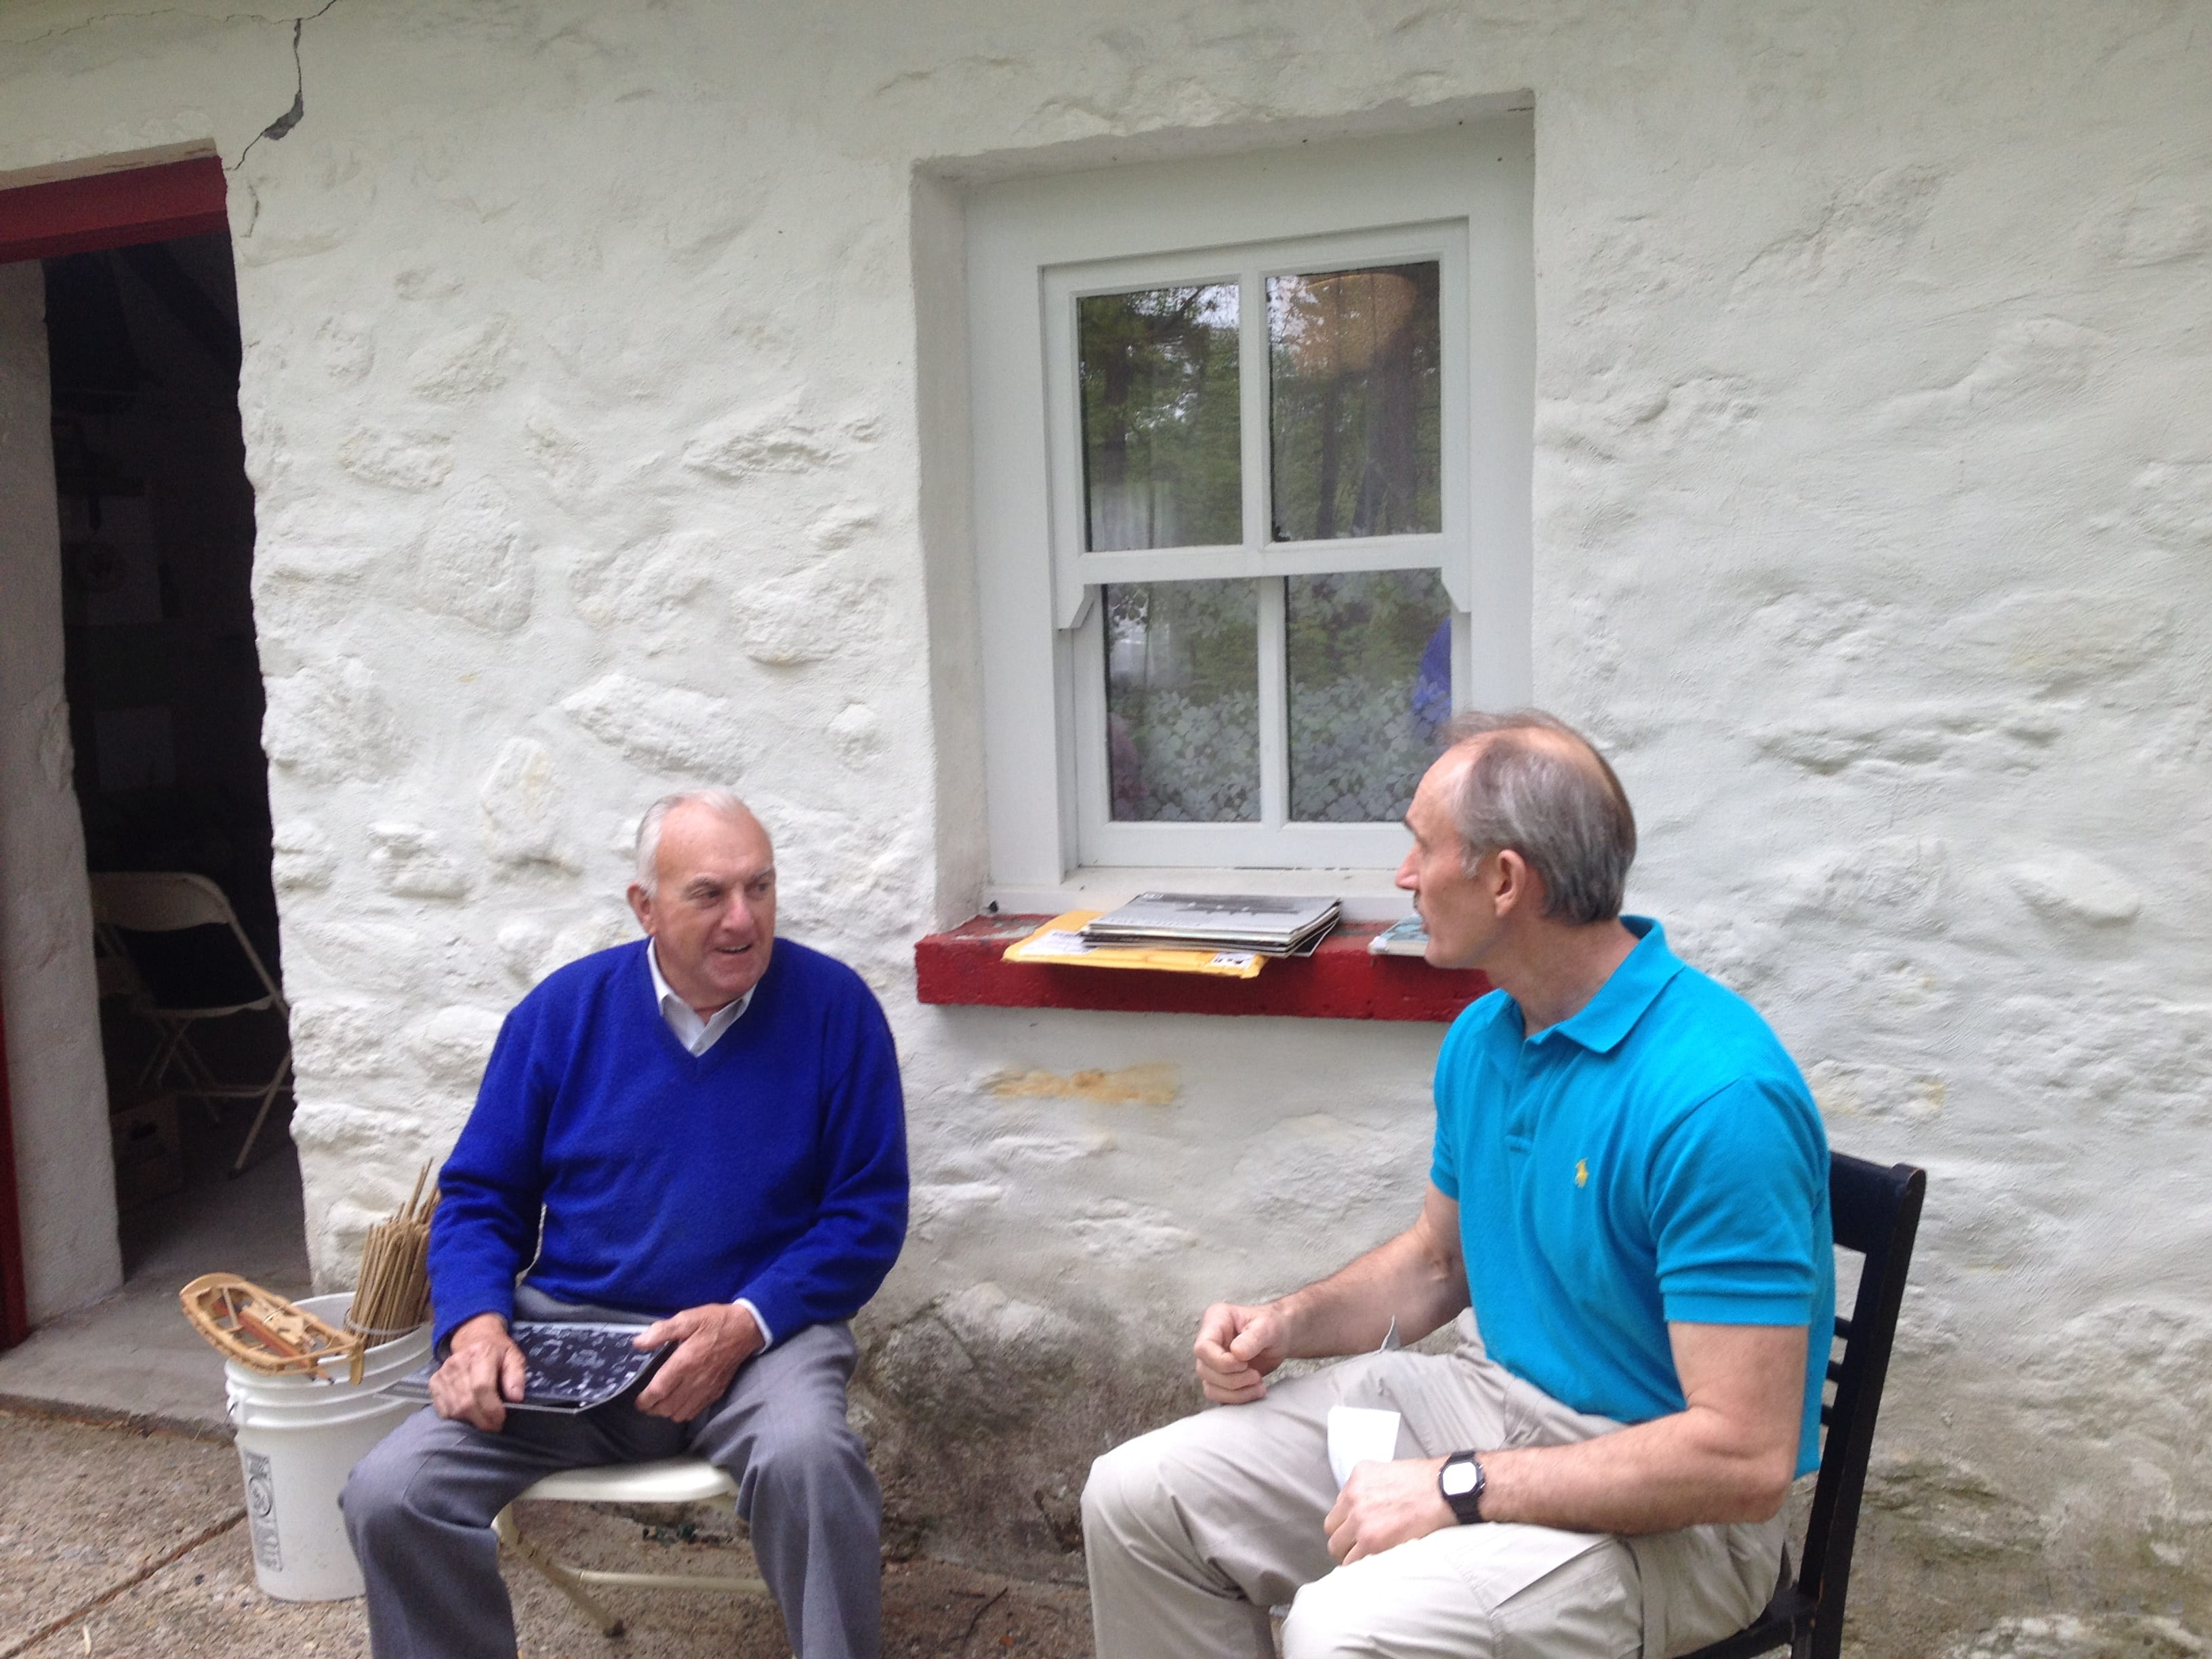 Mike Newell interviewing Johnny Joyce the morning of May 21, 2016, at the Irish Cottage, Irish Cultural Centre 200 New Boston Drive, Canton, MA. Two men seated. Man on left wearing purple shirt and gray pants, man on right wearing blue polo shirt and khaki pants.